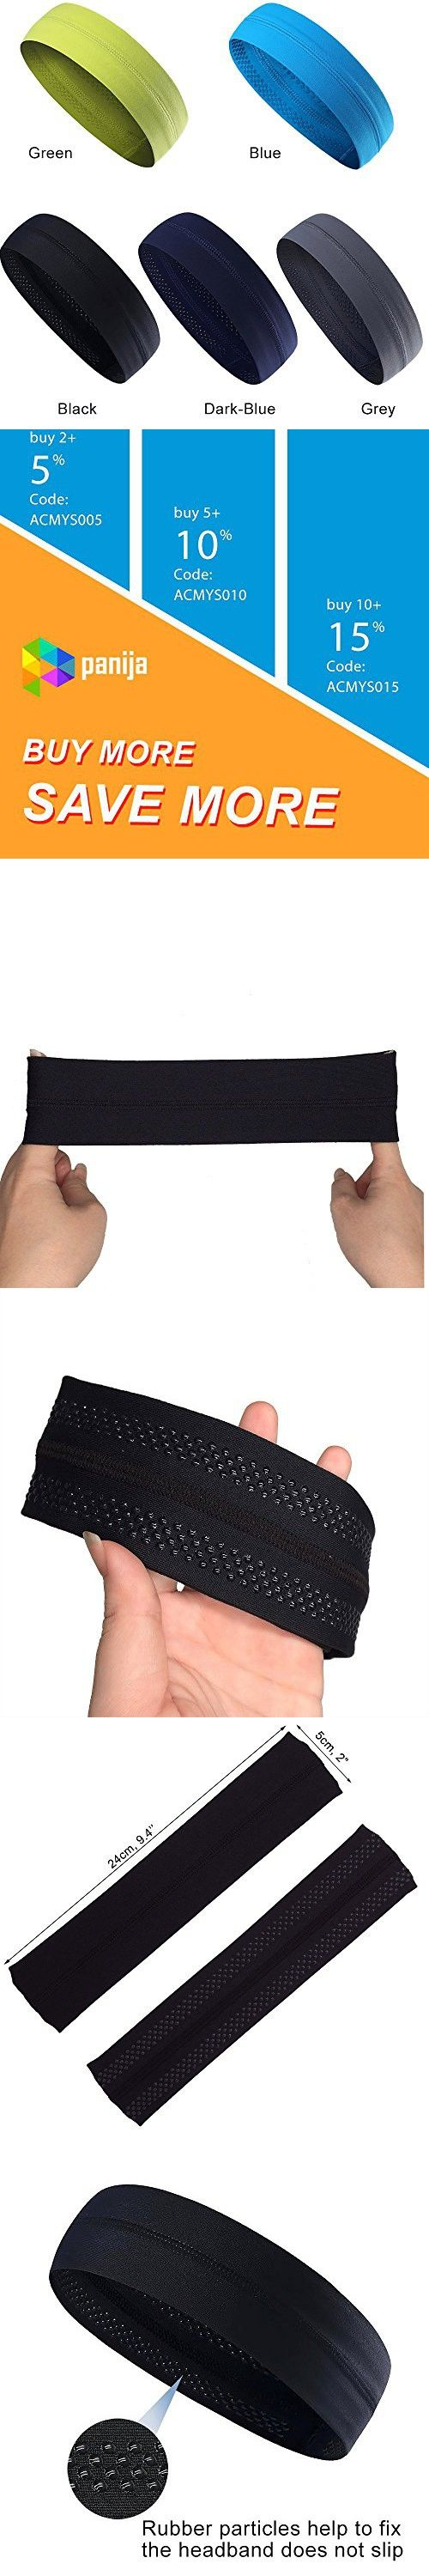 Cooling Headband That Can Absorb Sweat And Which Has A Very High Elasticity, Very Useful for Fitness, Gym, Yoga, Great For Women And Men (black)